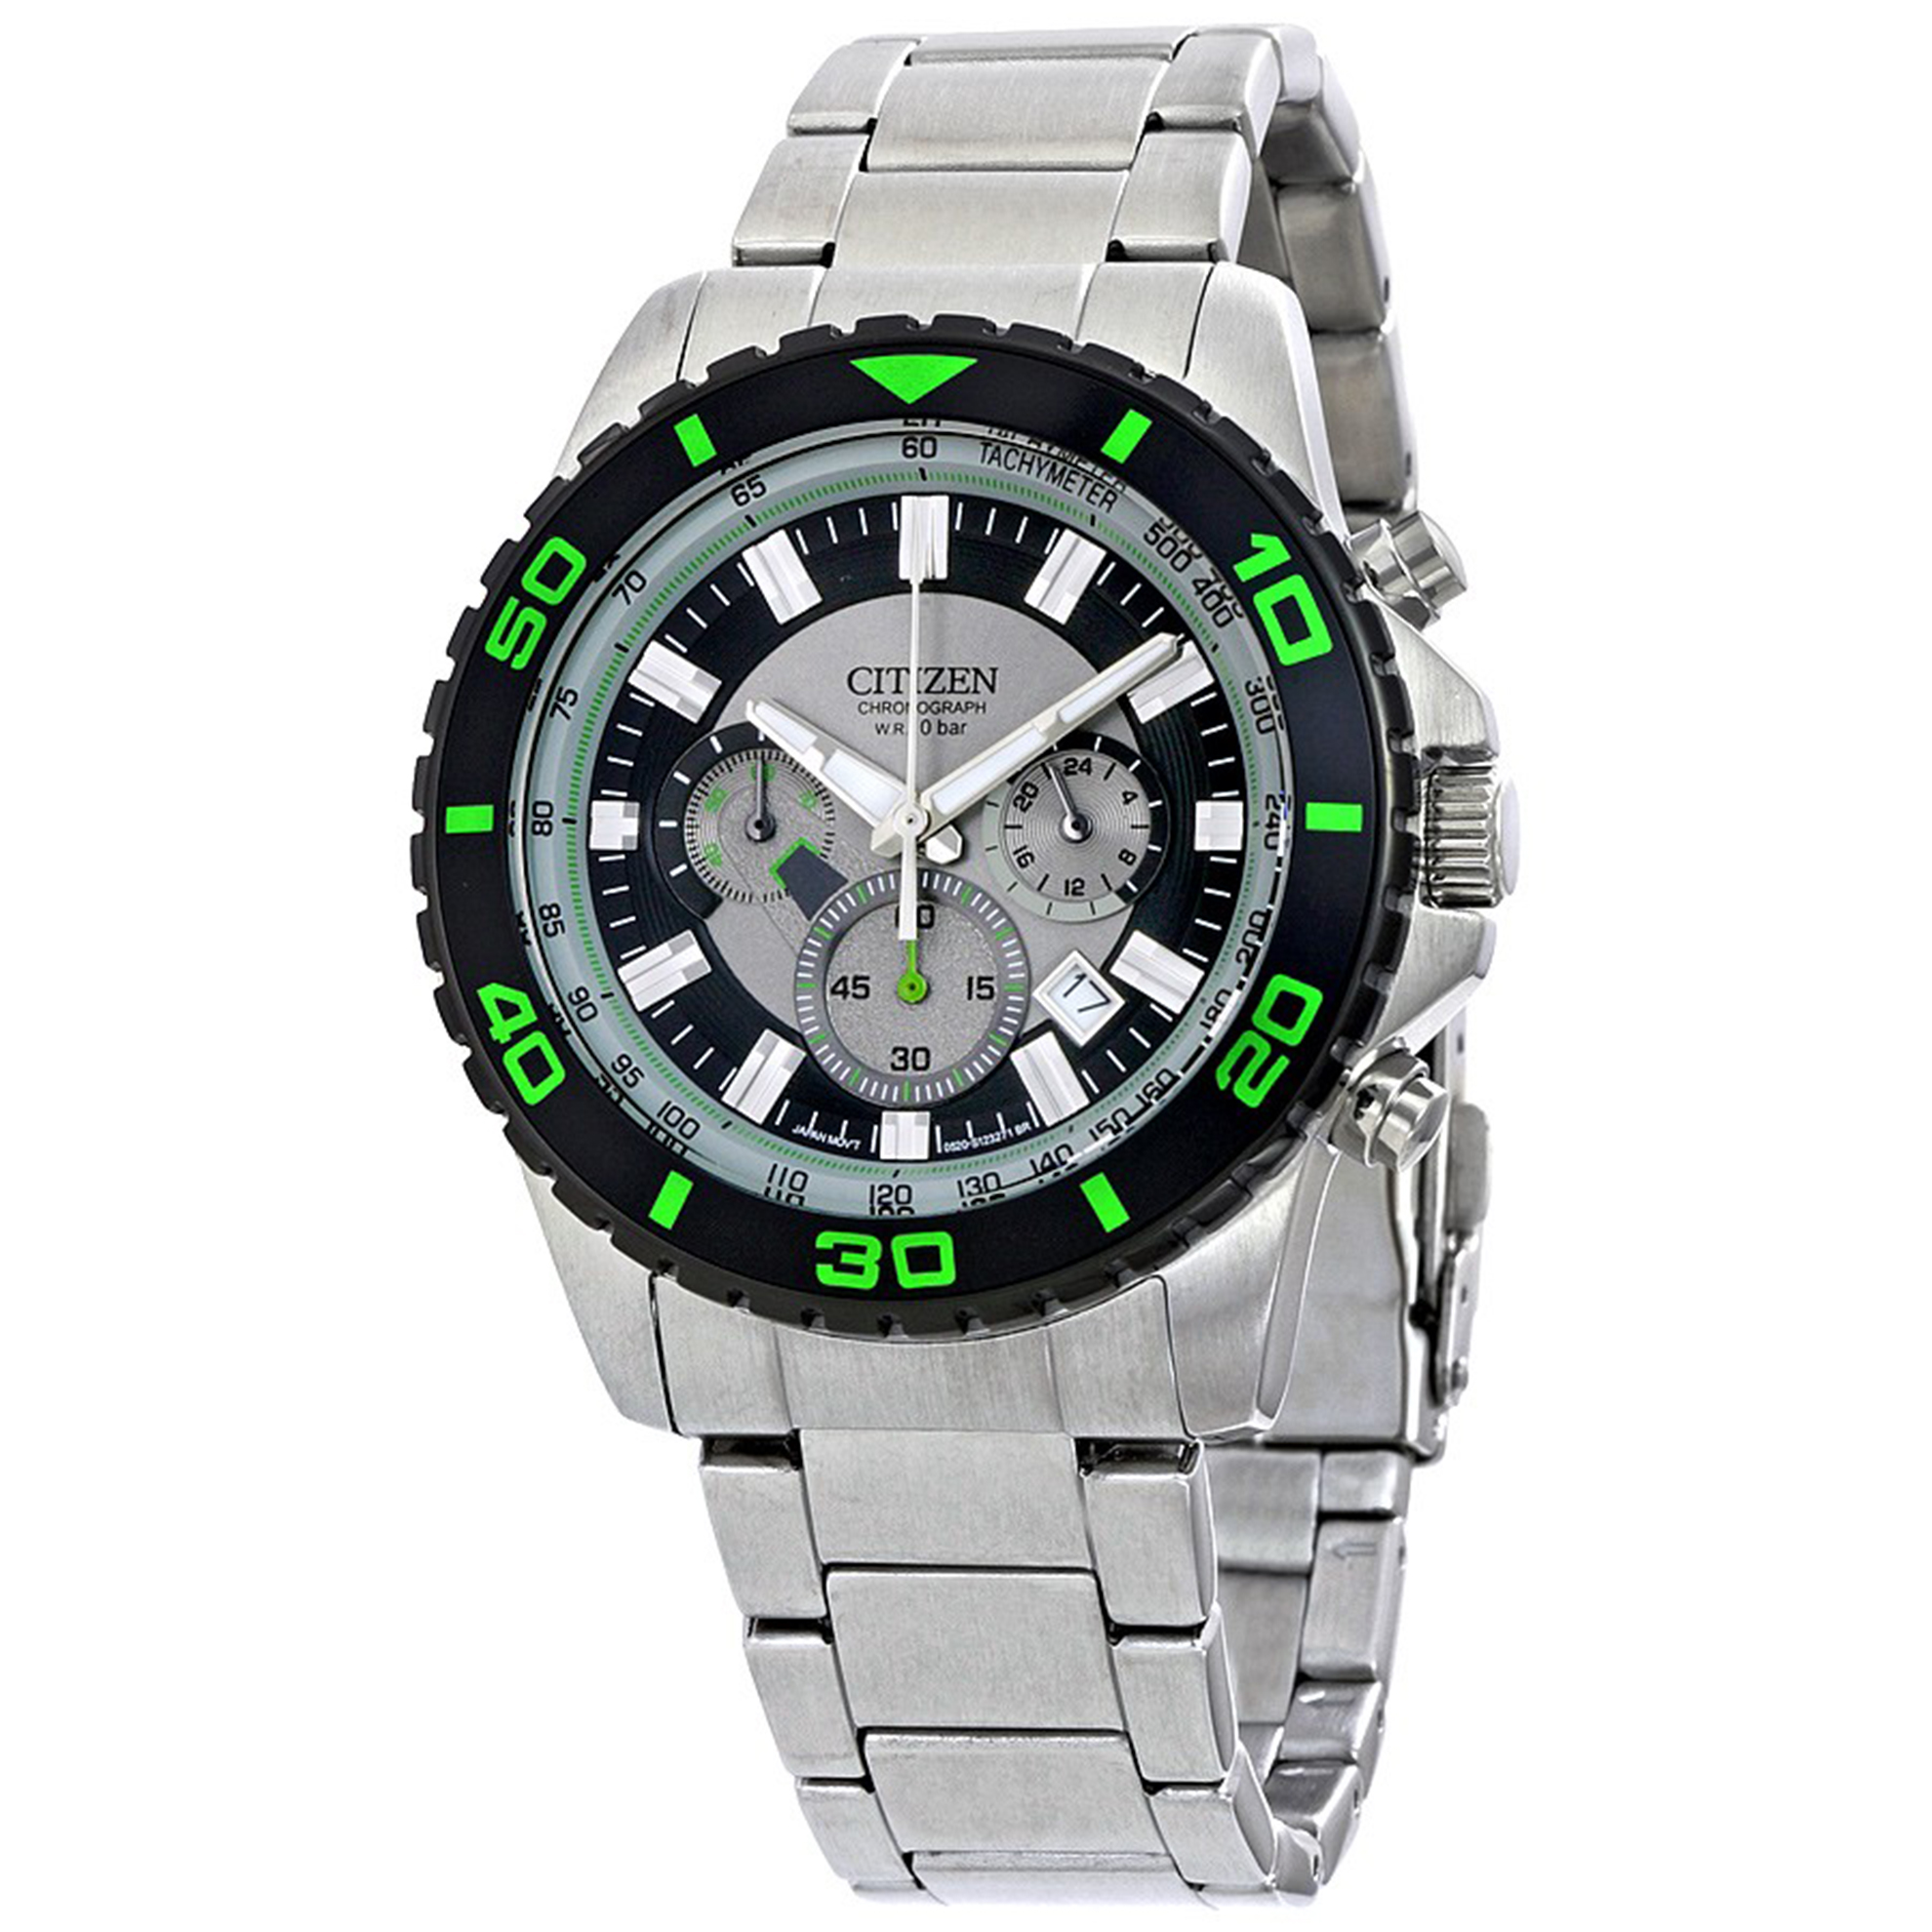 Citizen AN8030-58G Citizen Men's Chronograph Stainless Steel Grey/Green